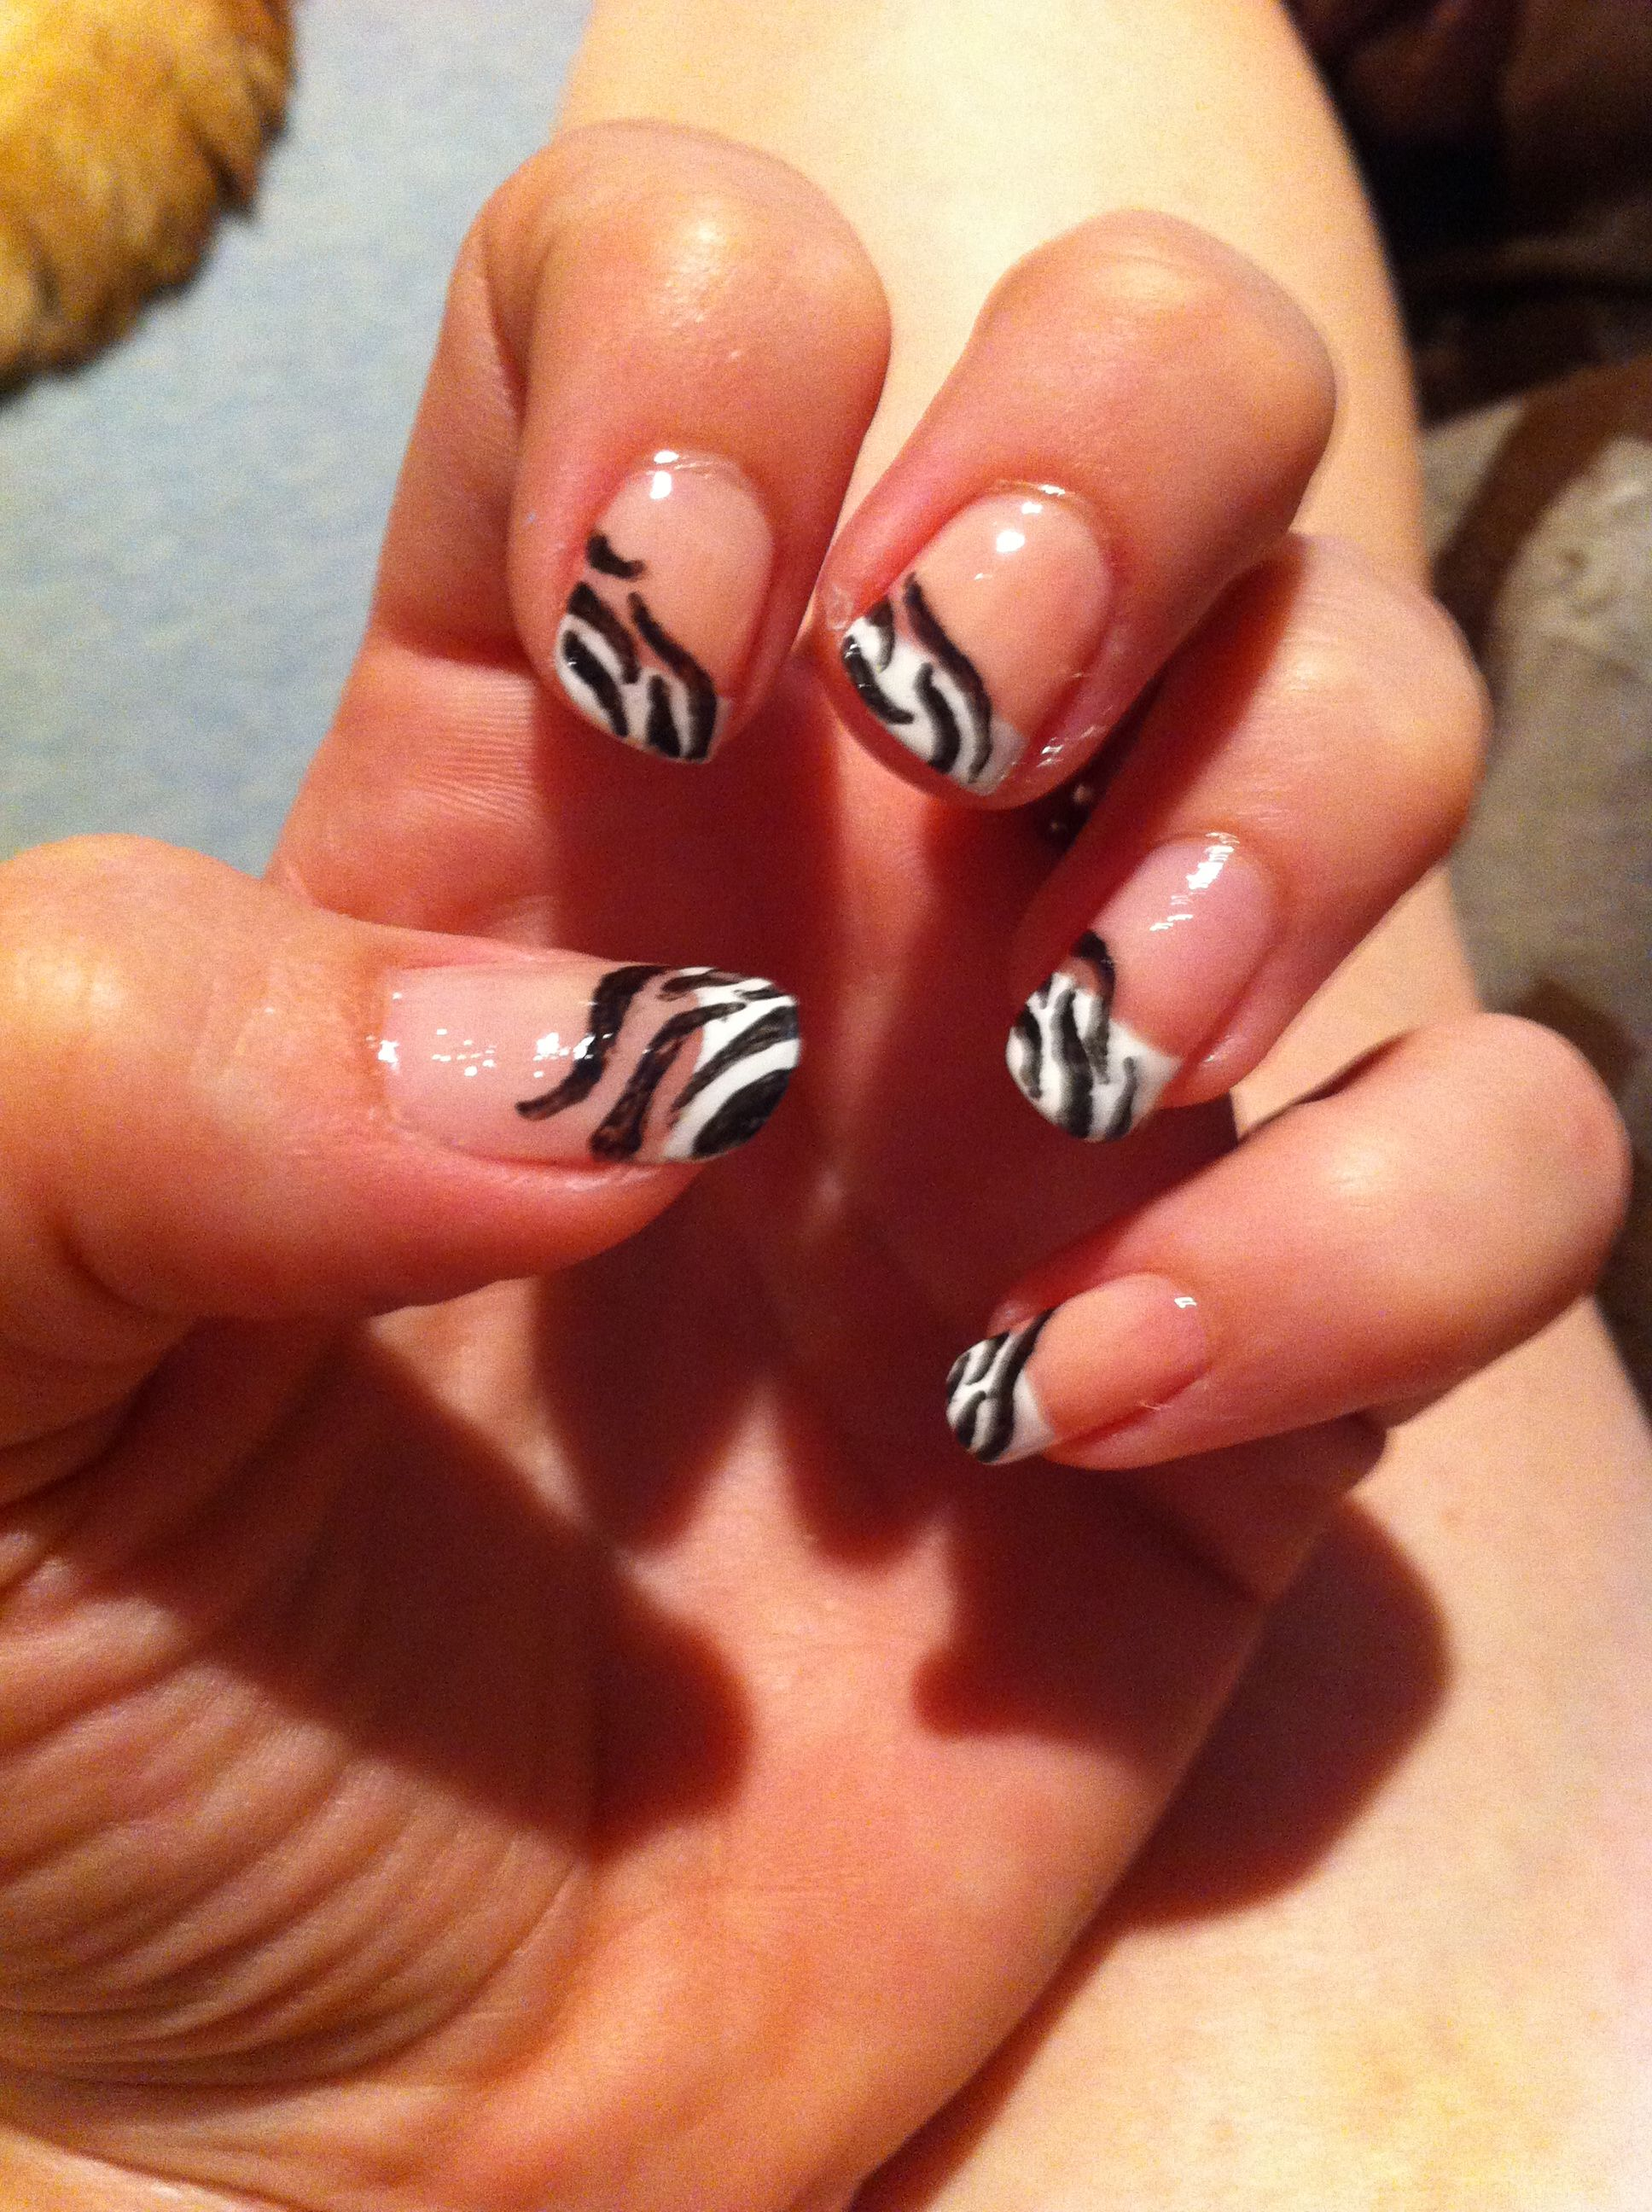 My own nail design - popculturez.com | You \'Nailed\' It! Group ...